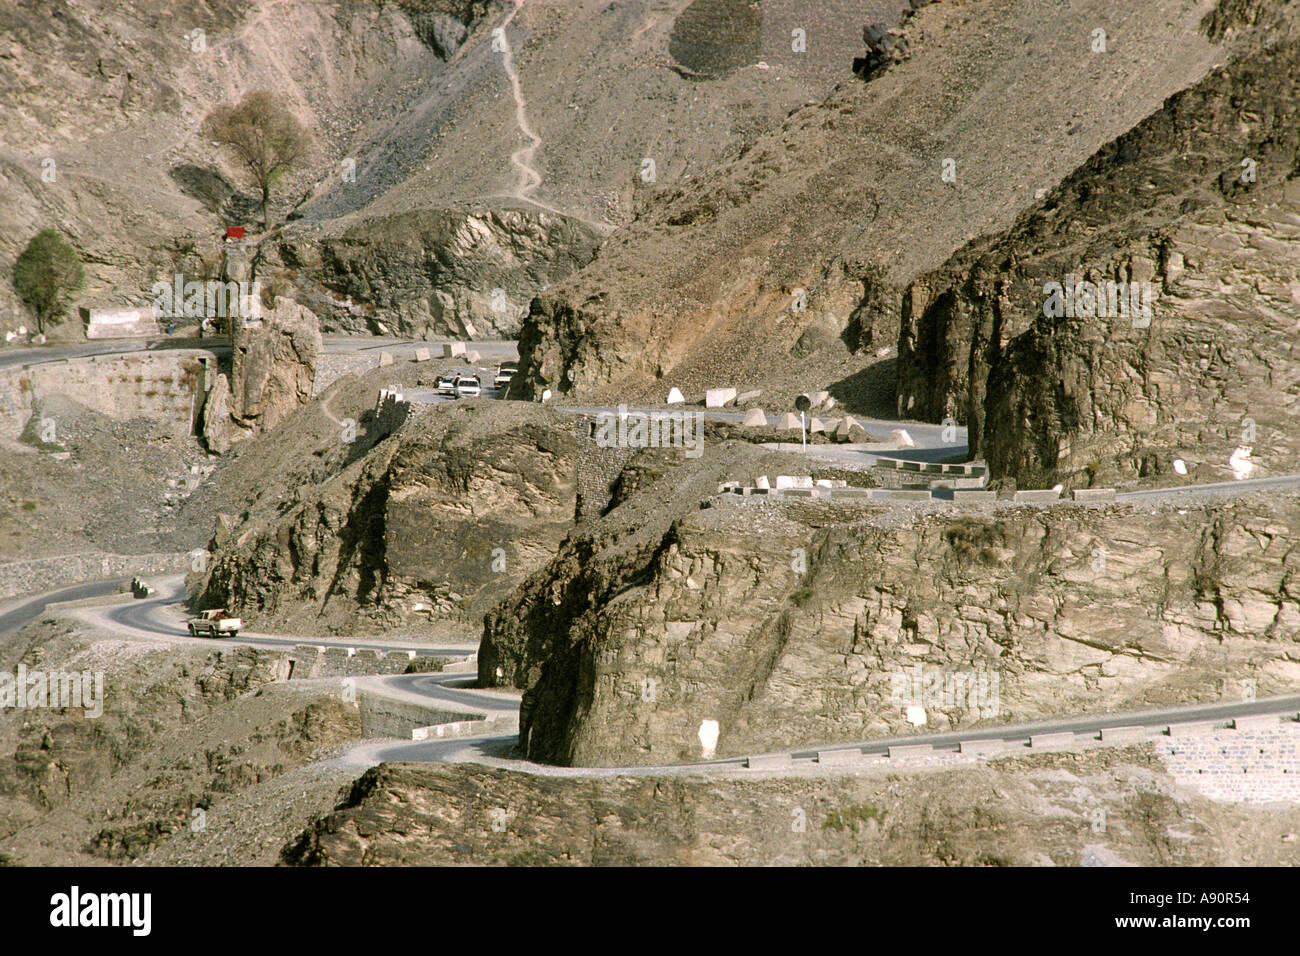 Pakistan NWFP Khyber Pass Afghan border country and Post No 1 from Landi Kotal - Stock Image